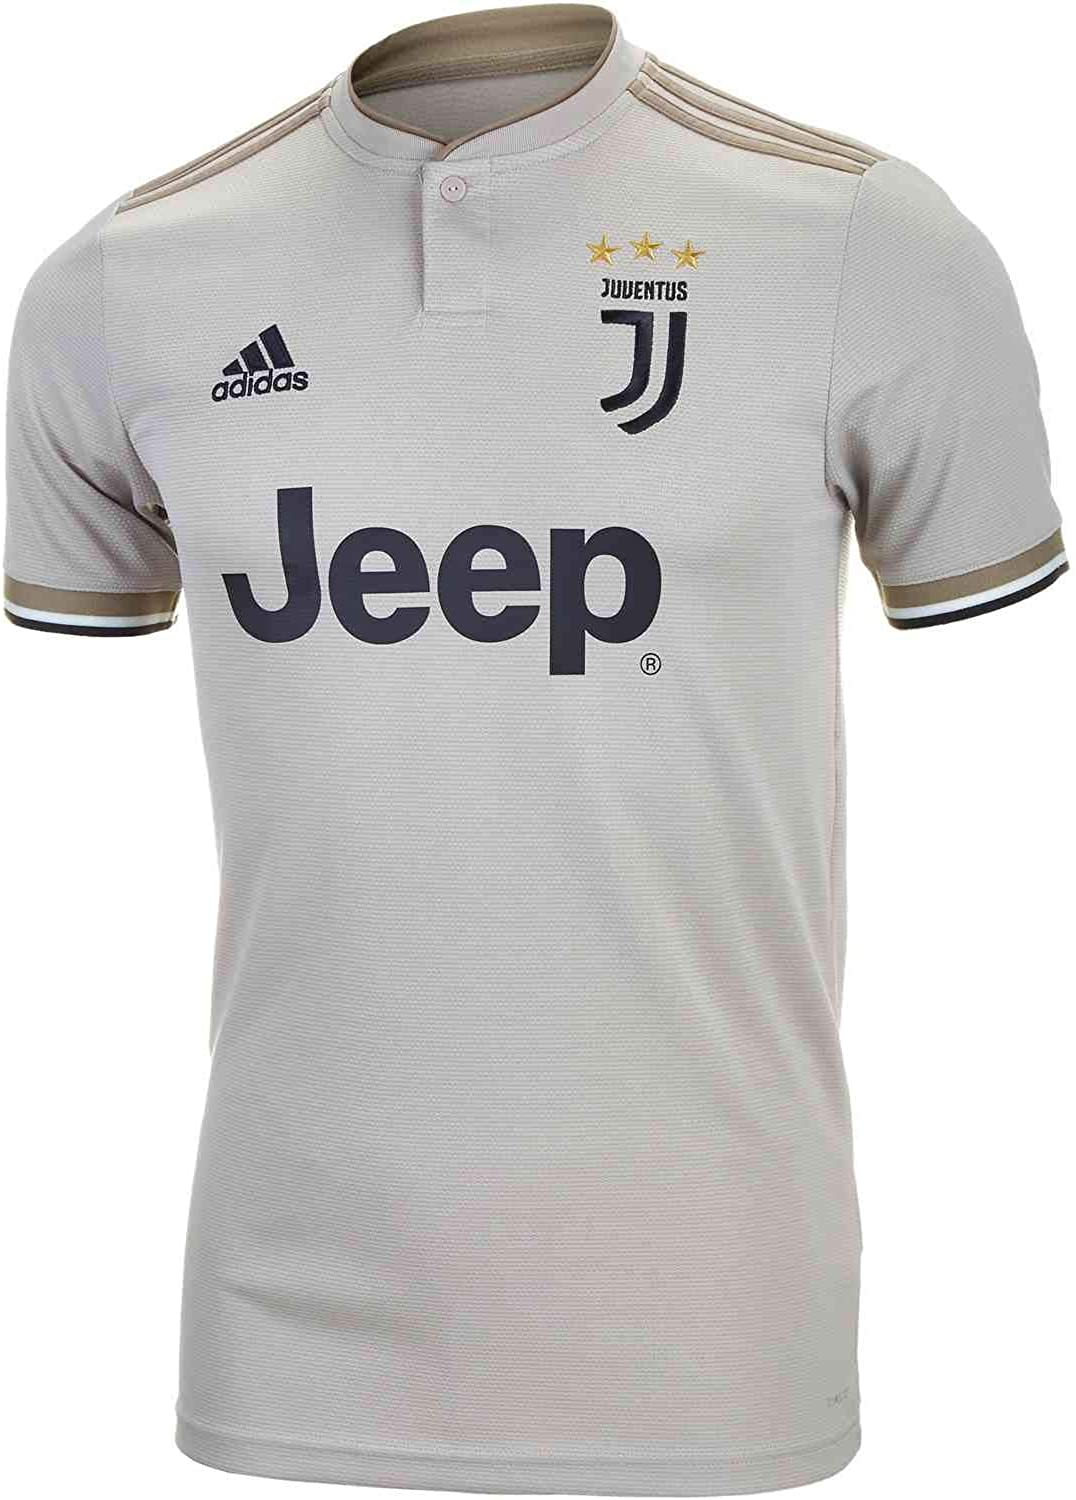 amazon com adidas juventus away jersey 18 19 season small clothing adidas juventus away jersey 18 19 season